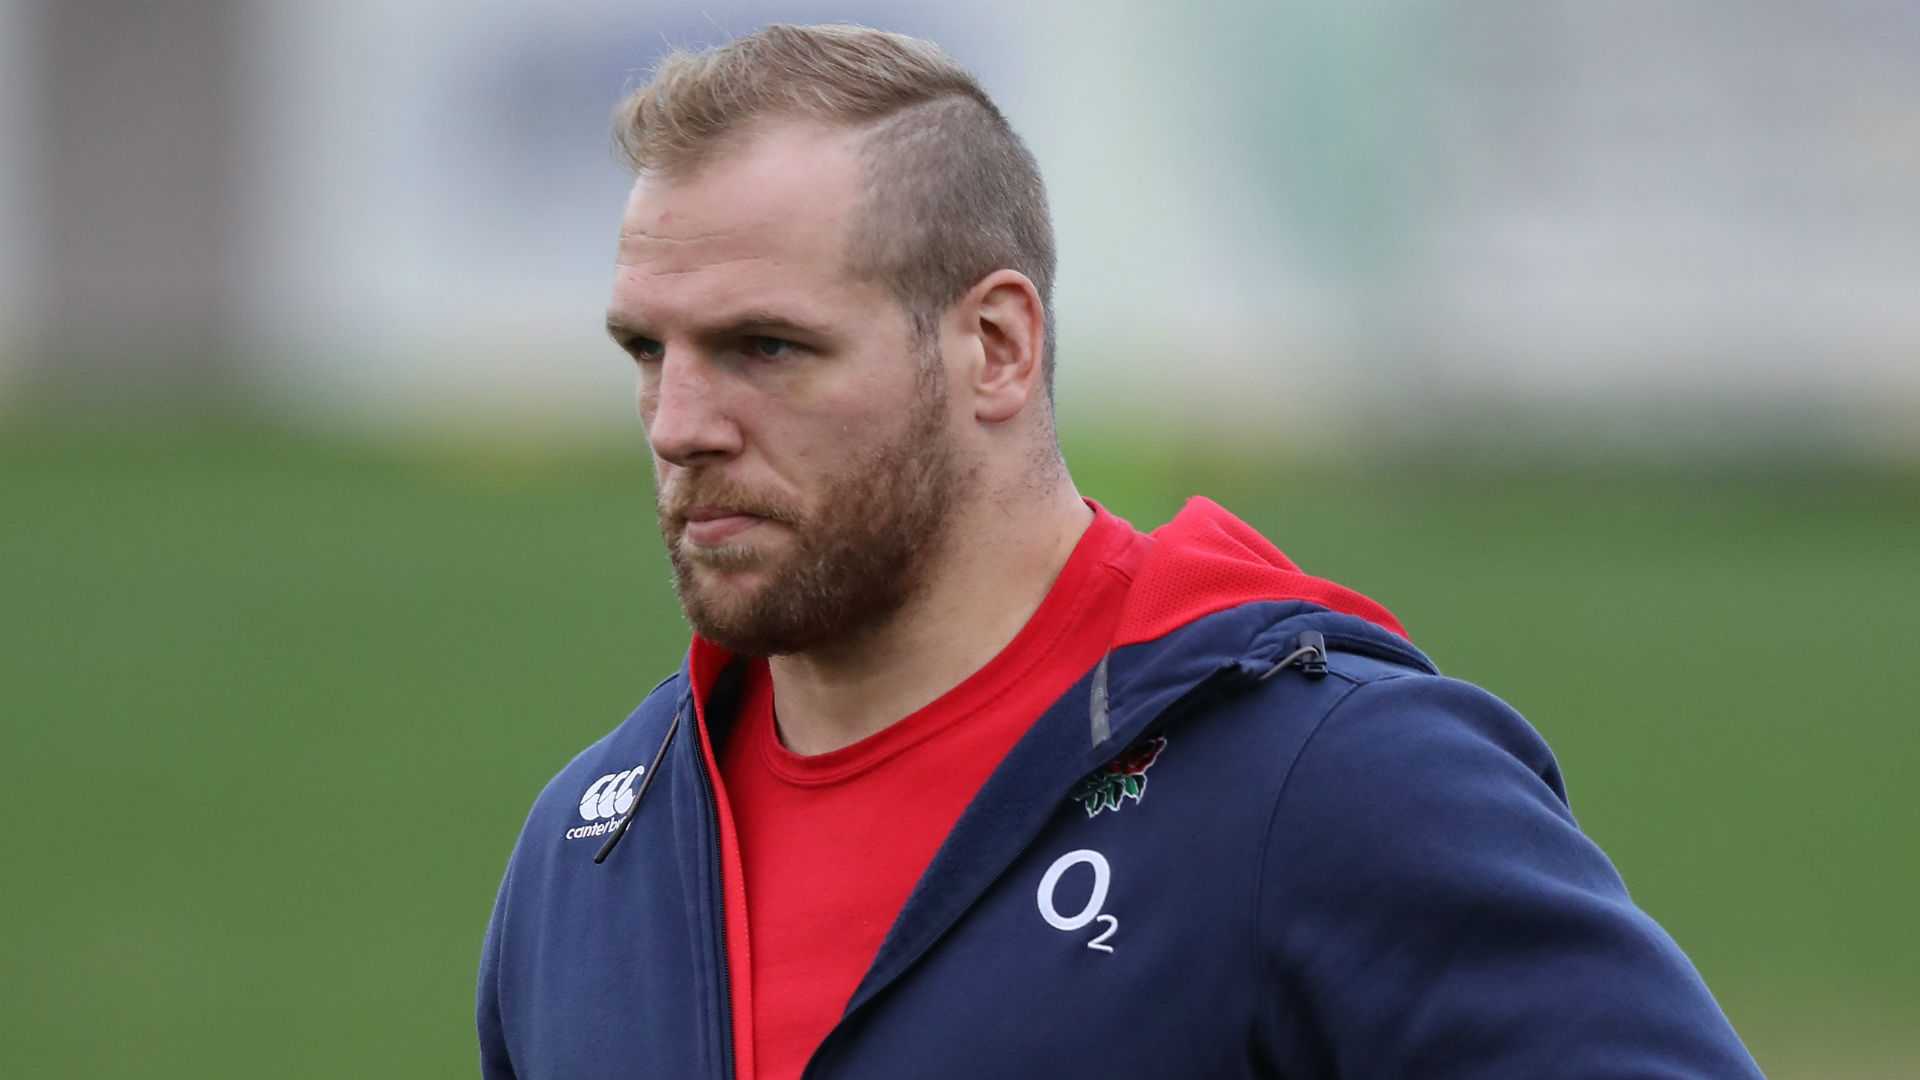 james haskell - photo #27